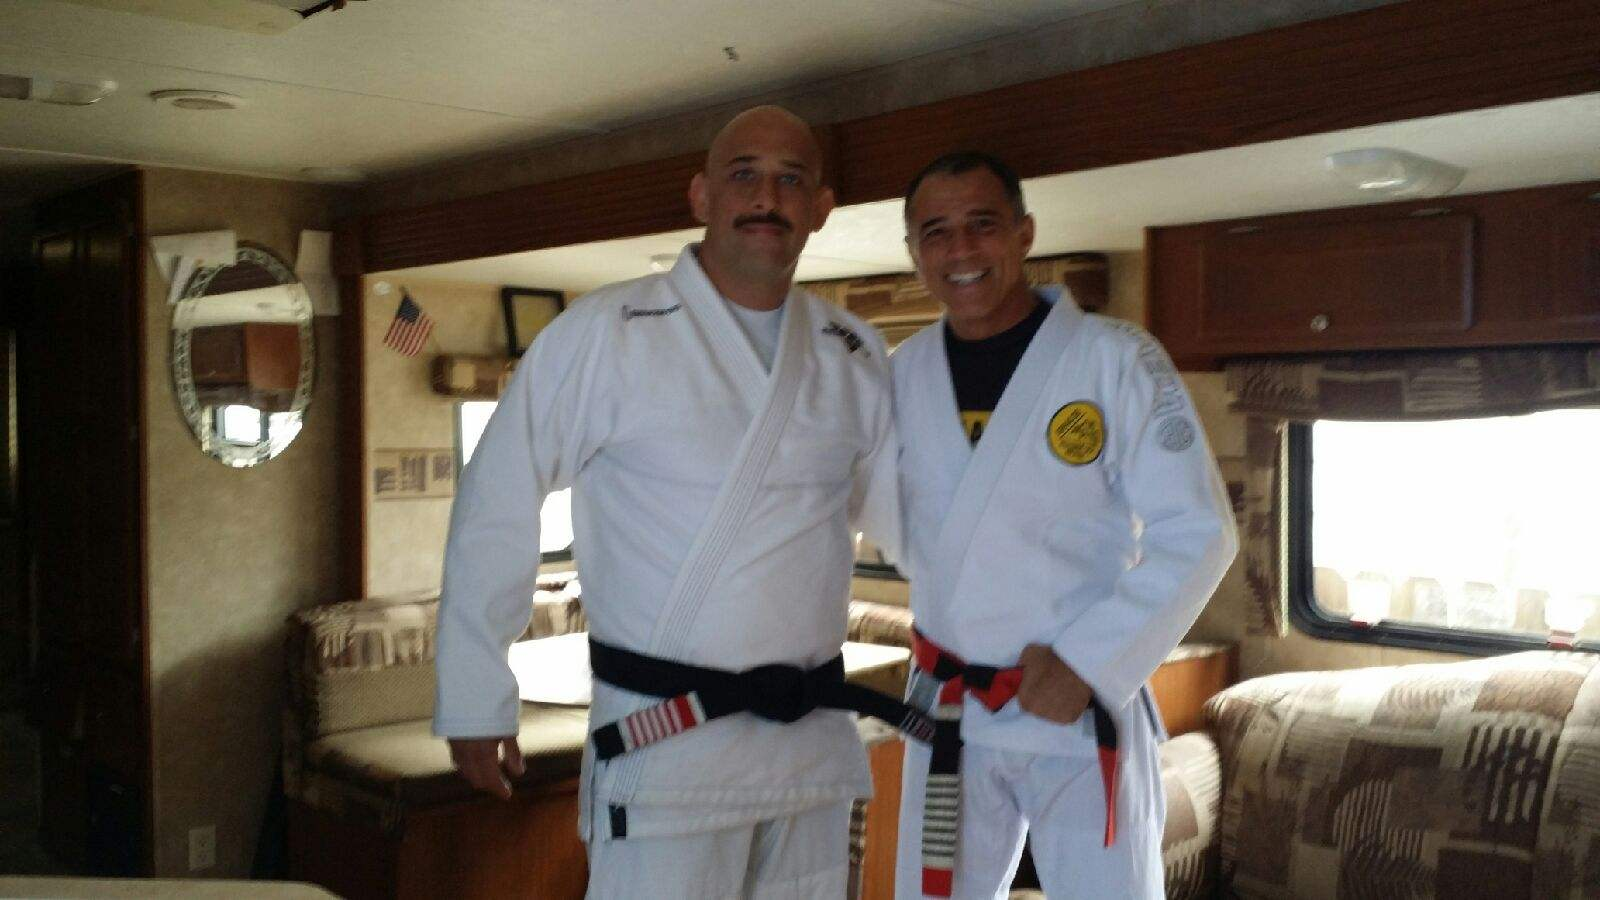 Victor Huber and Royler Gracie